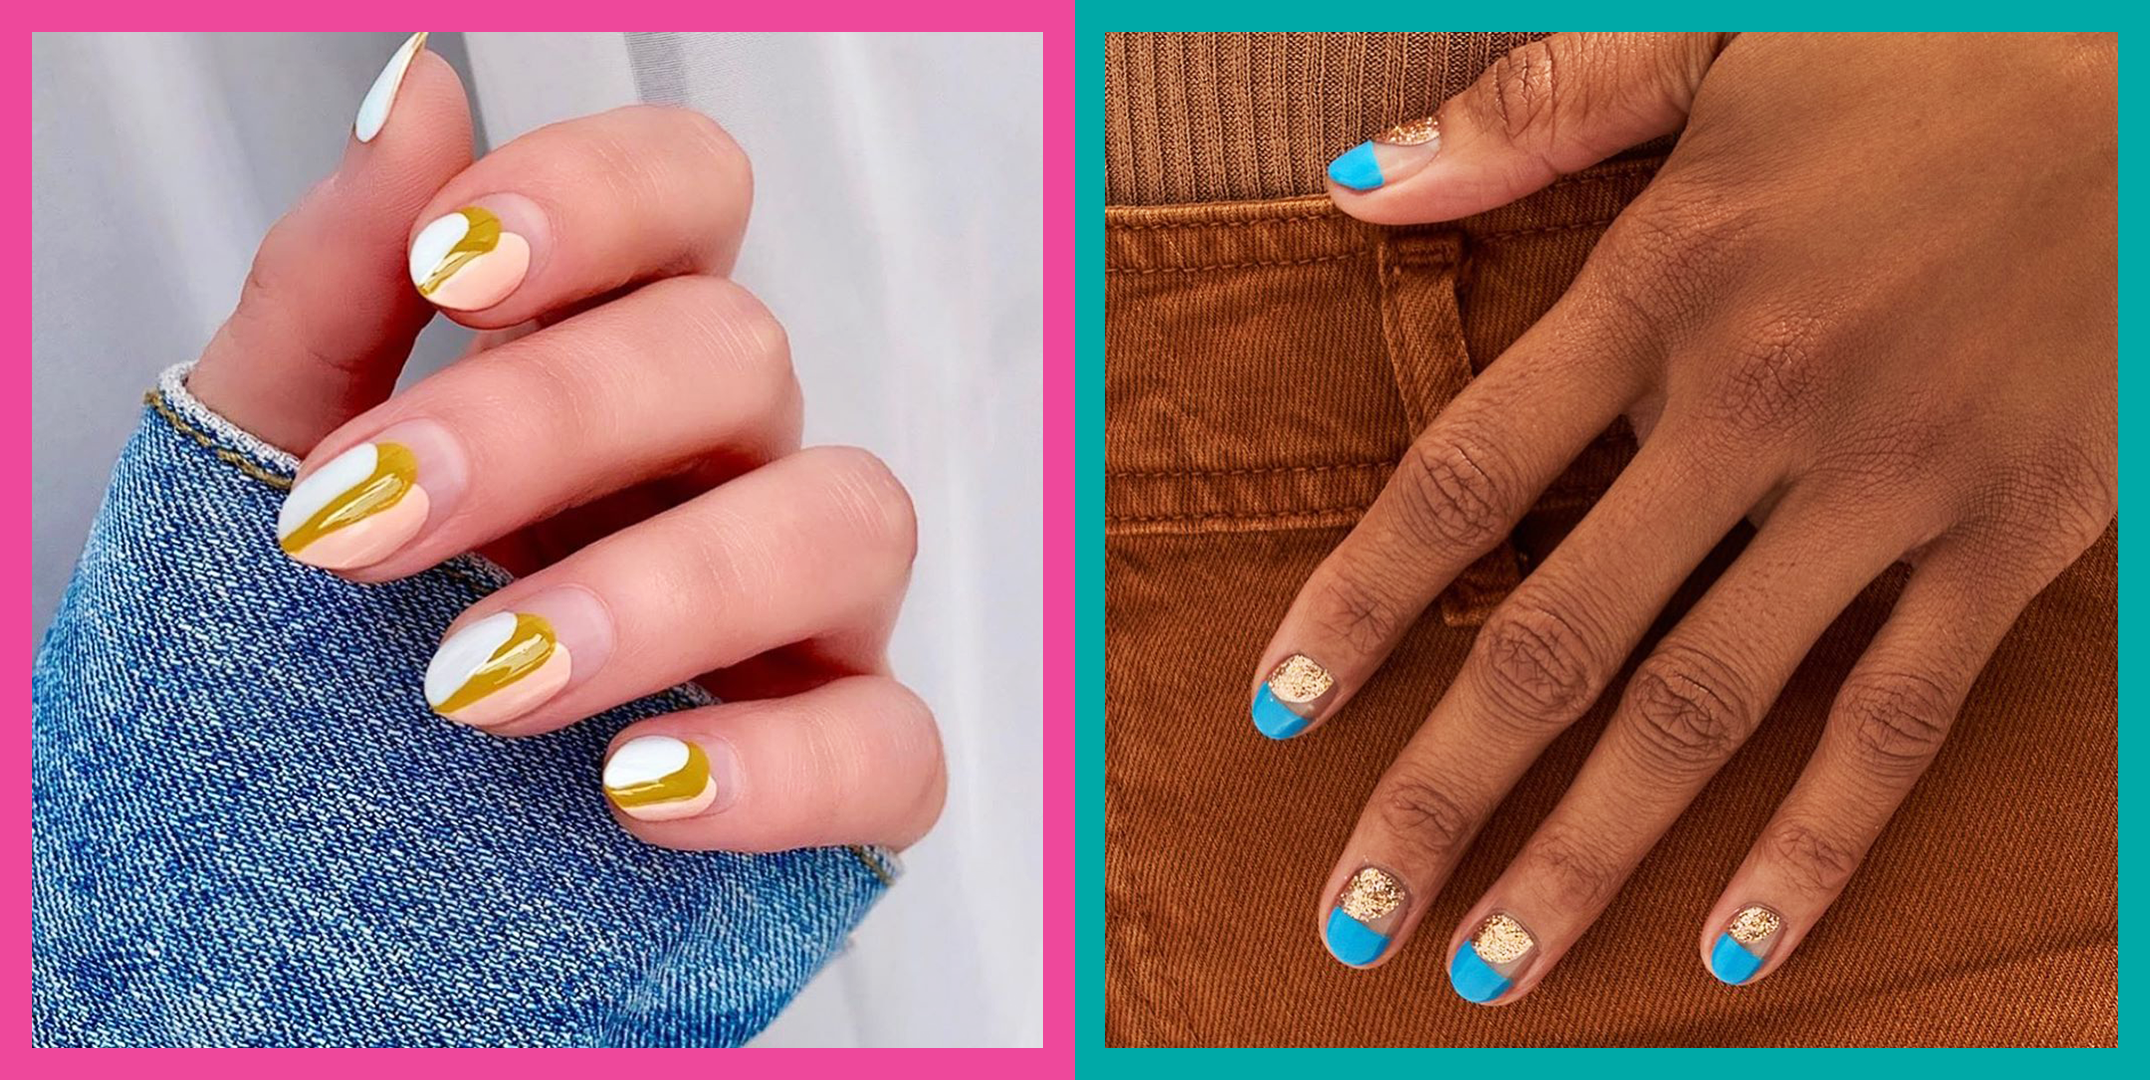 28 Best Fall Nail Trends And Ideas Of 2020 To Try Before Autumn